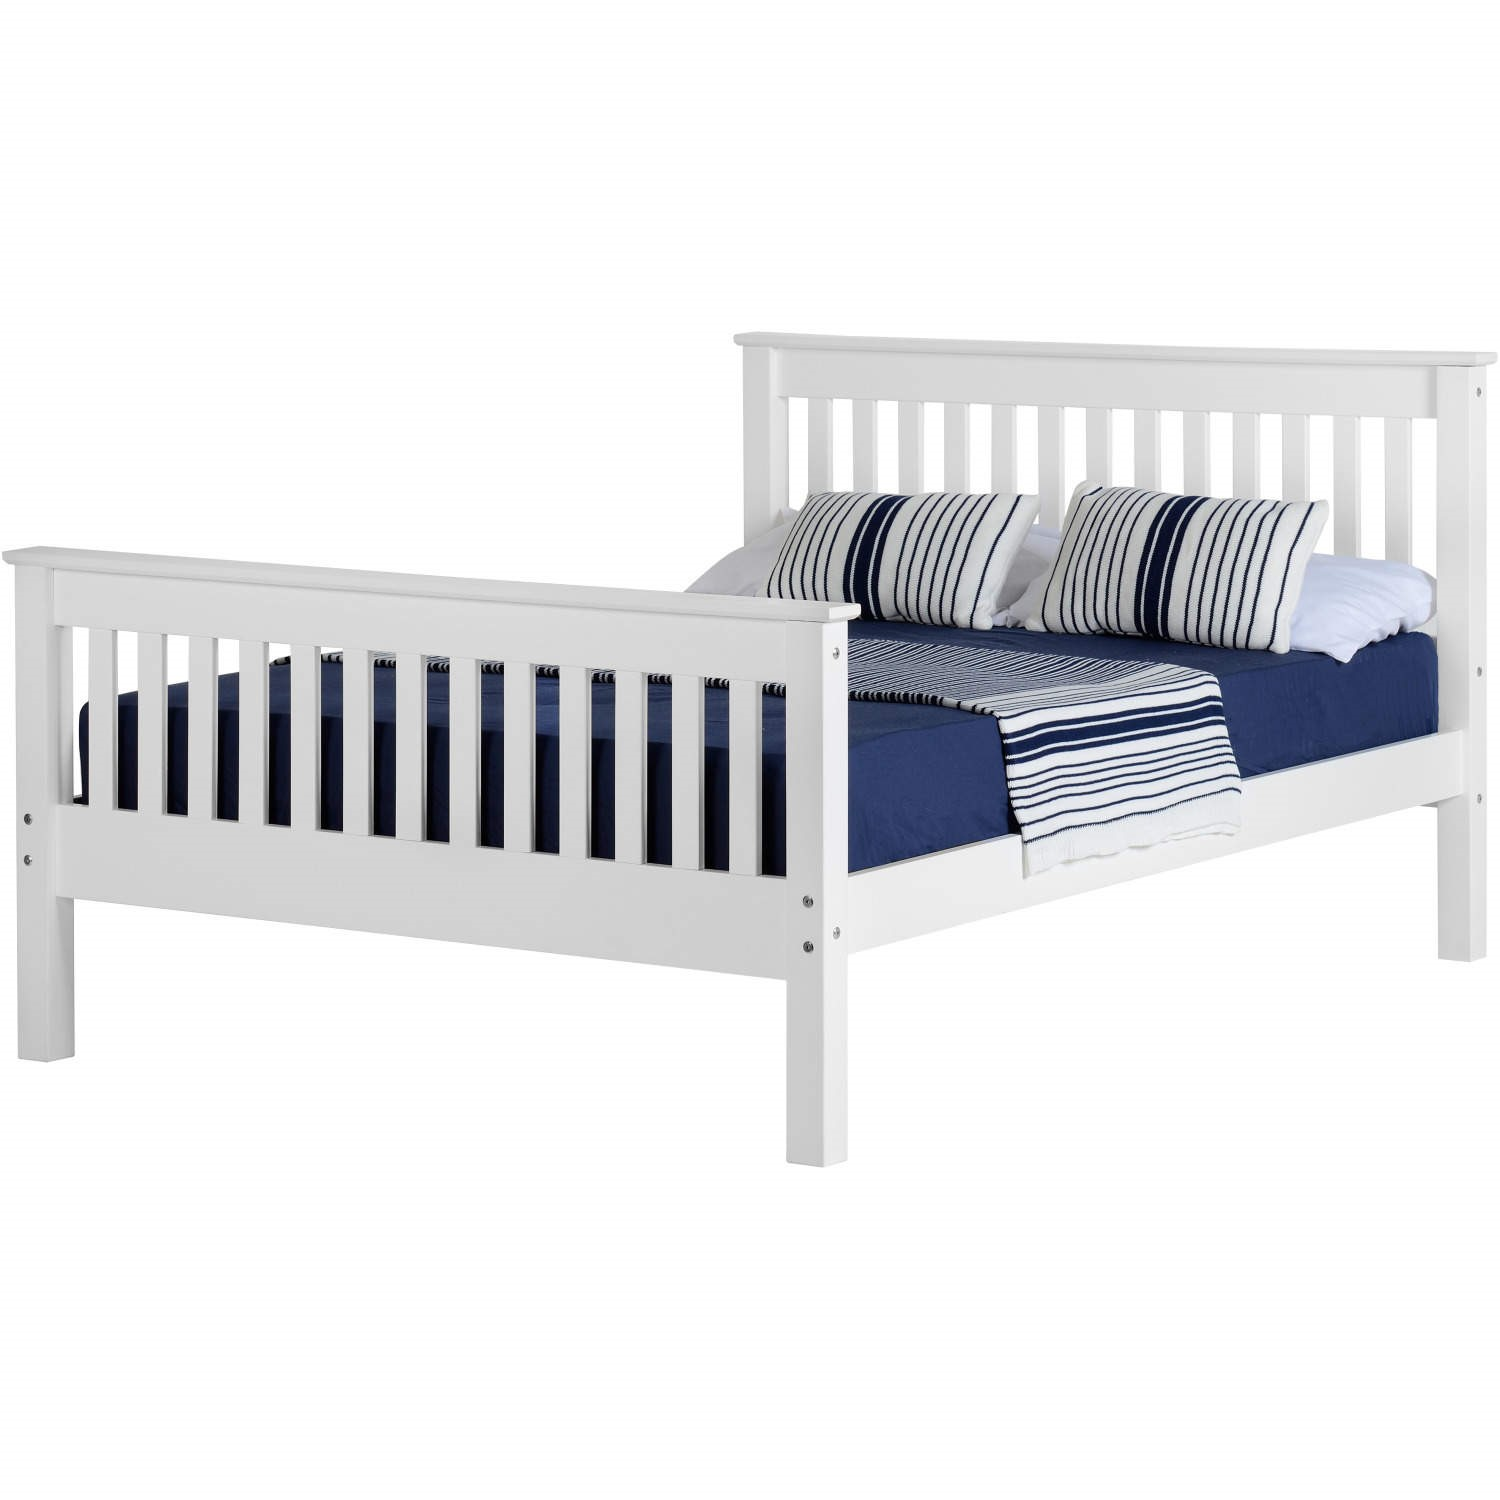 Seconique Monaco King Size Bed Frame In White With High Foot End Furniture123